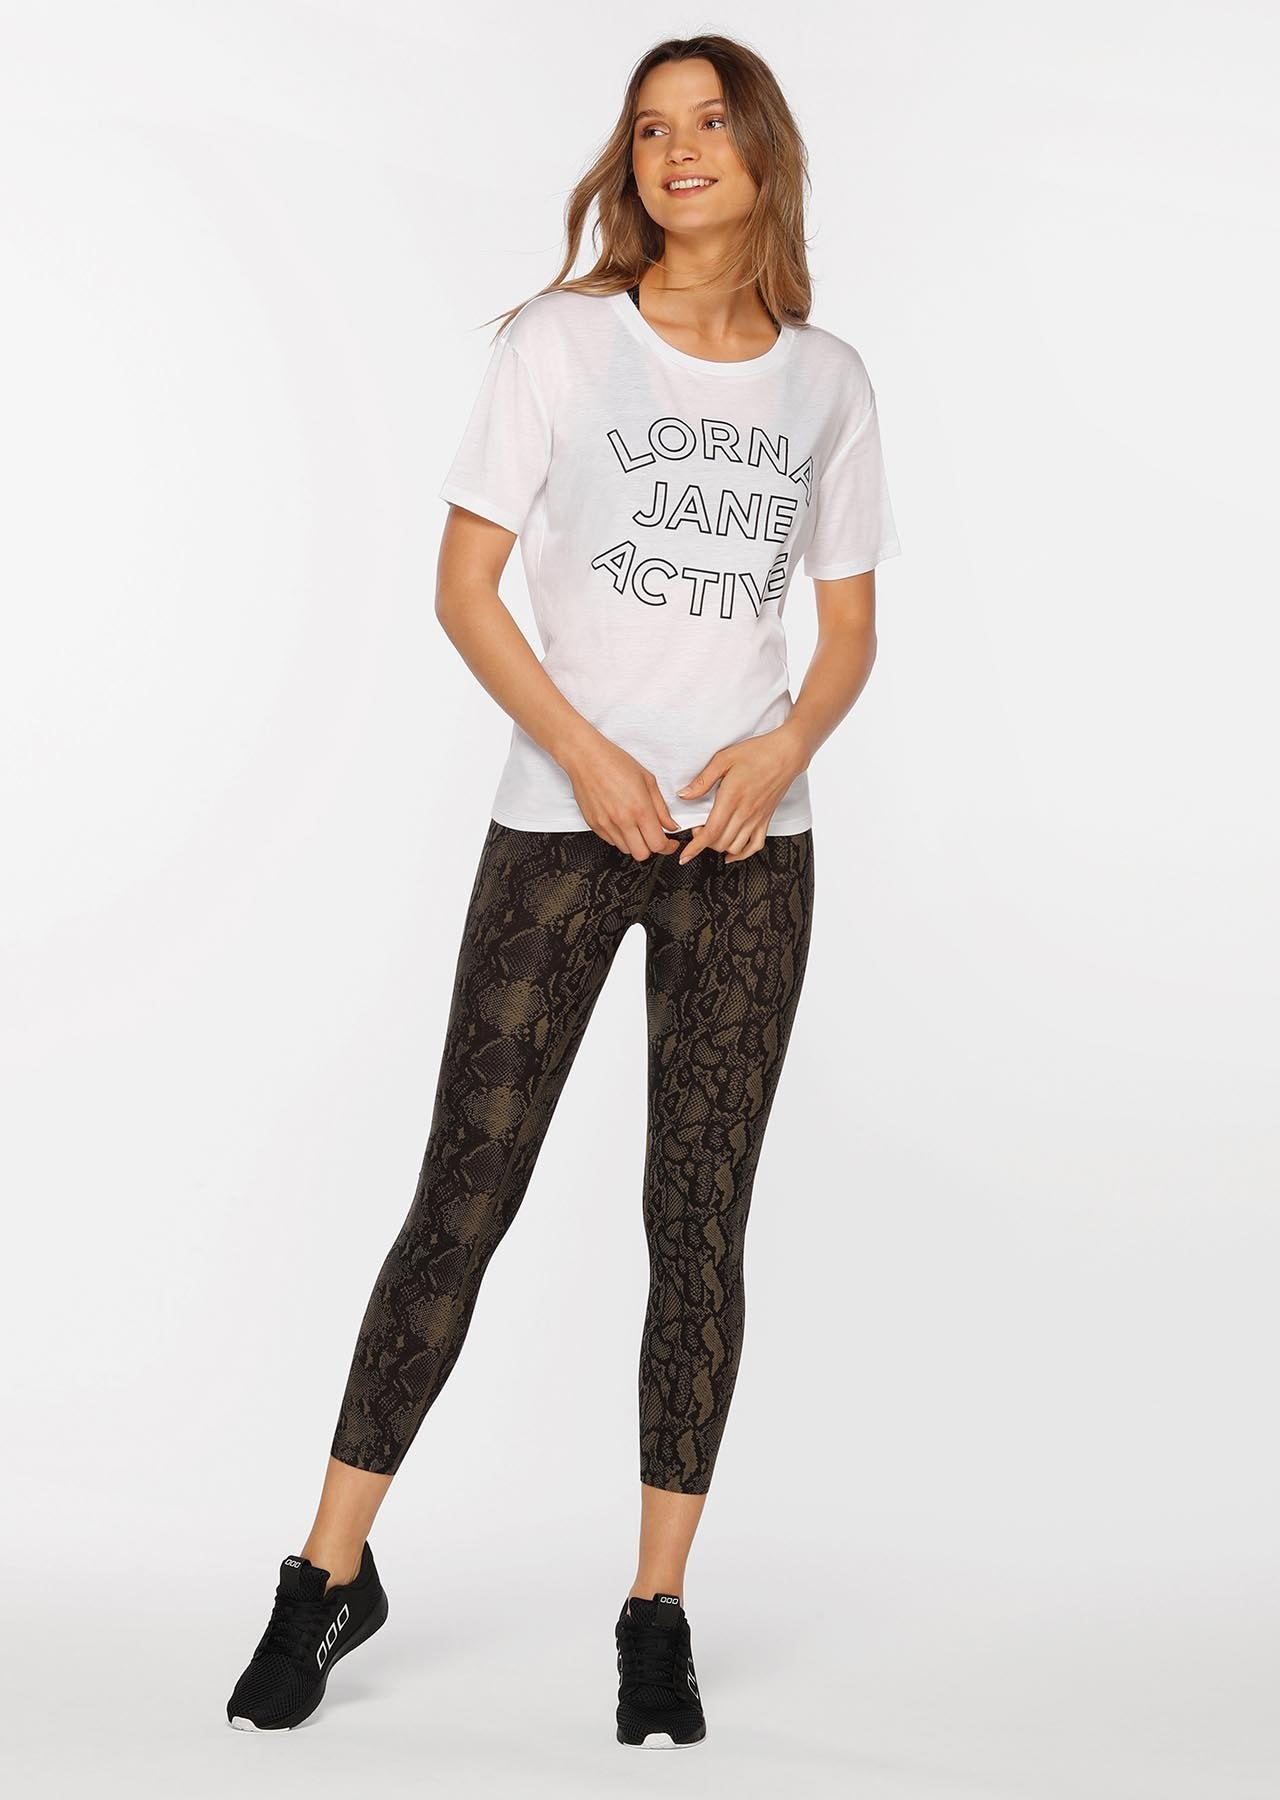 All Day Comfort Tee-TOPS-LORNA JANE-Believe Active